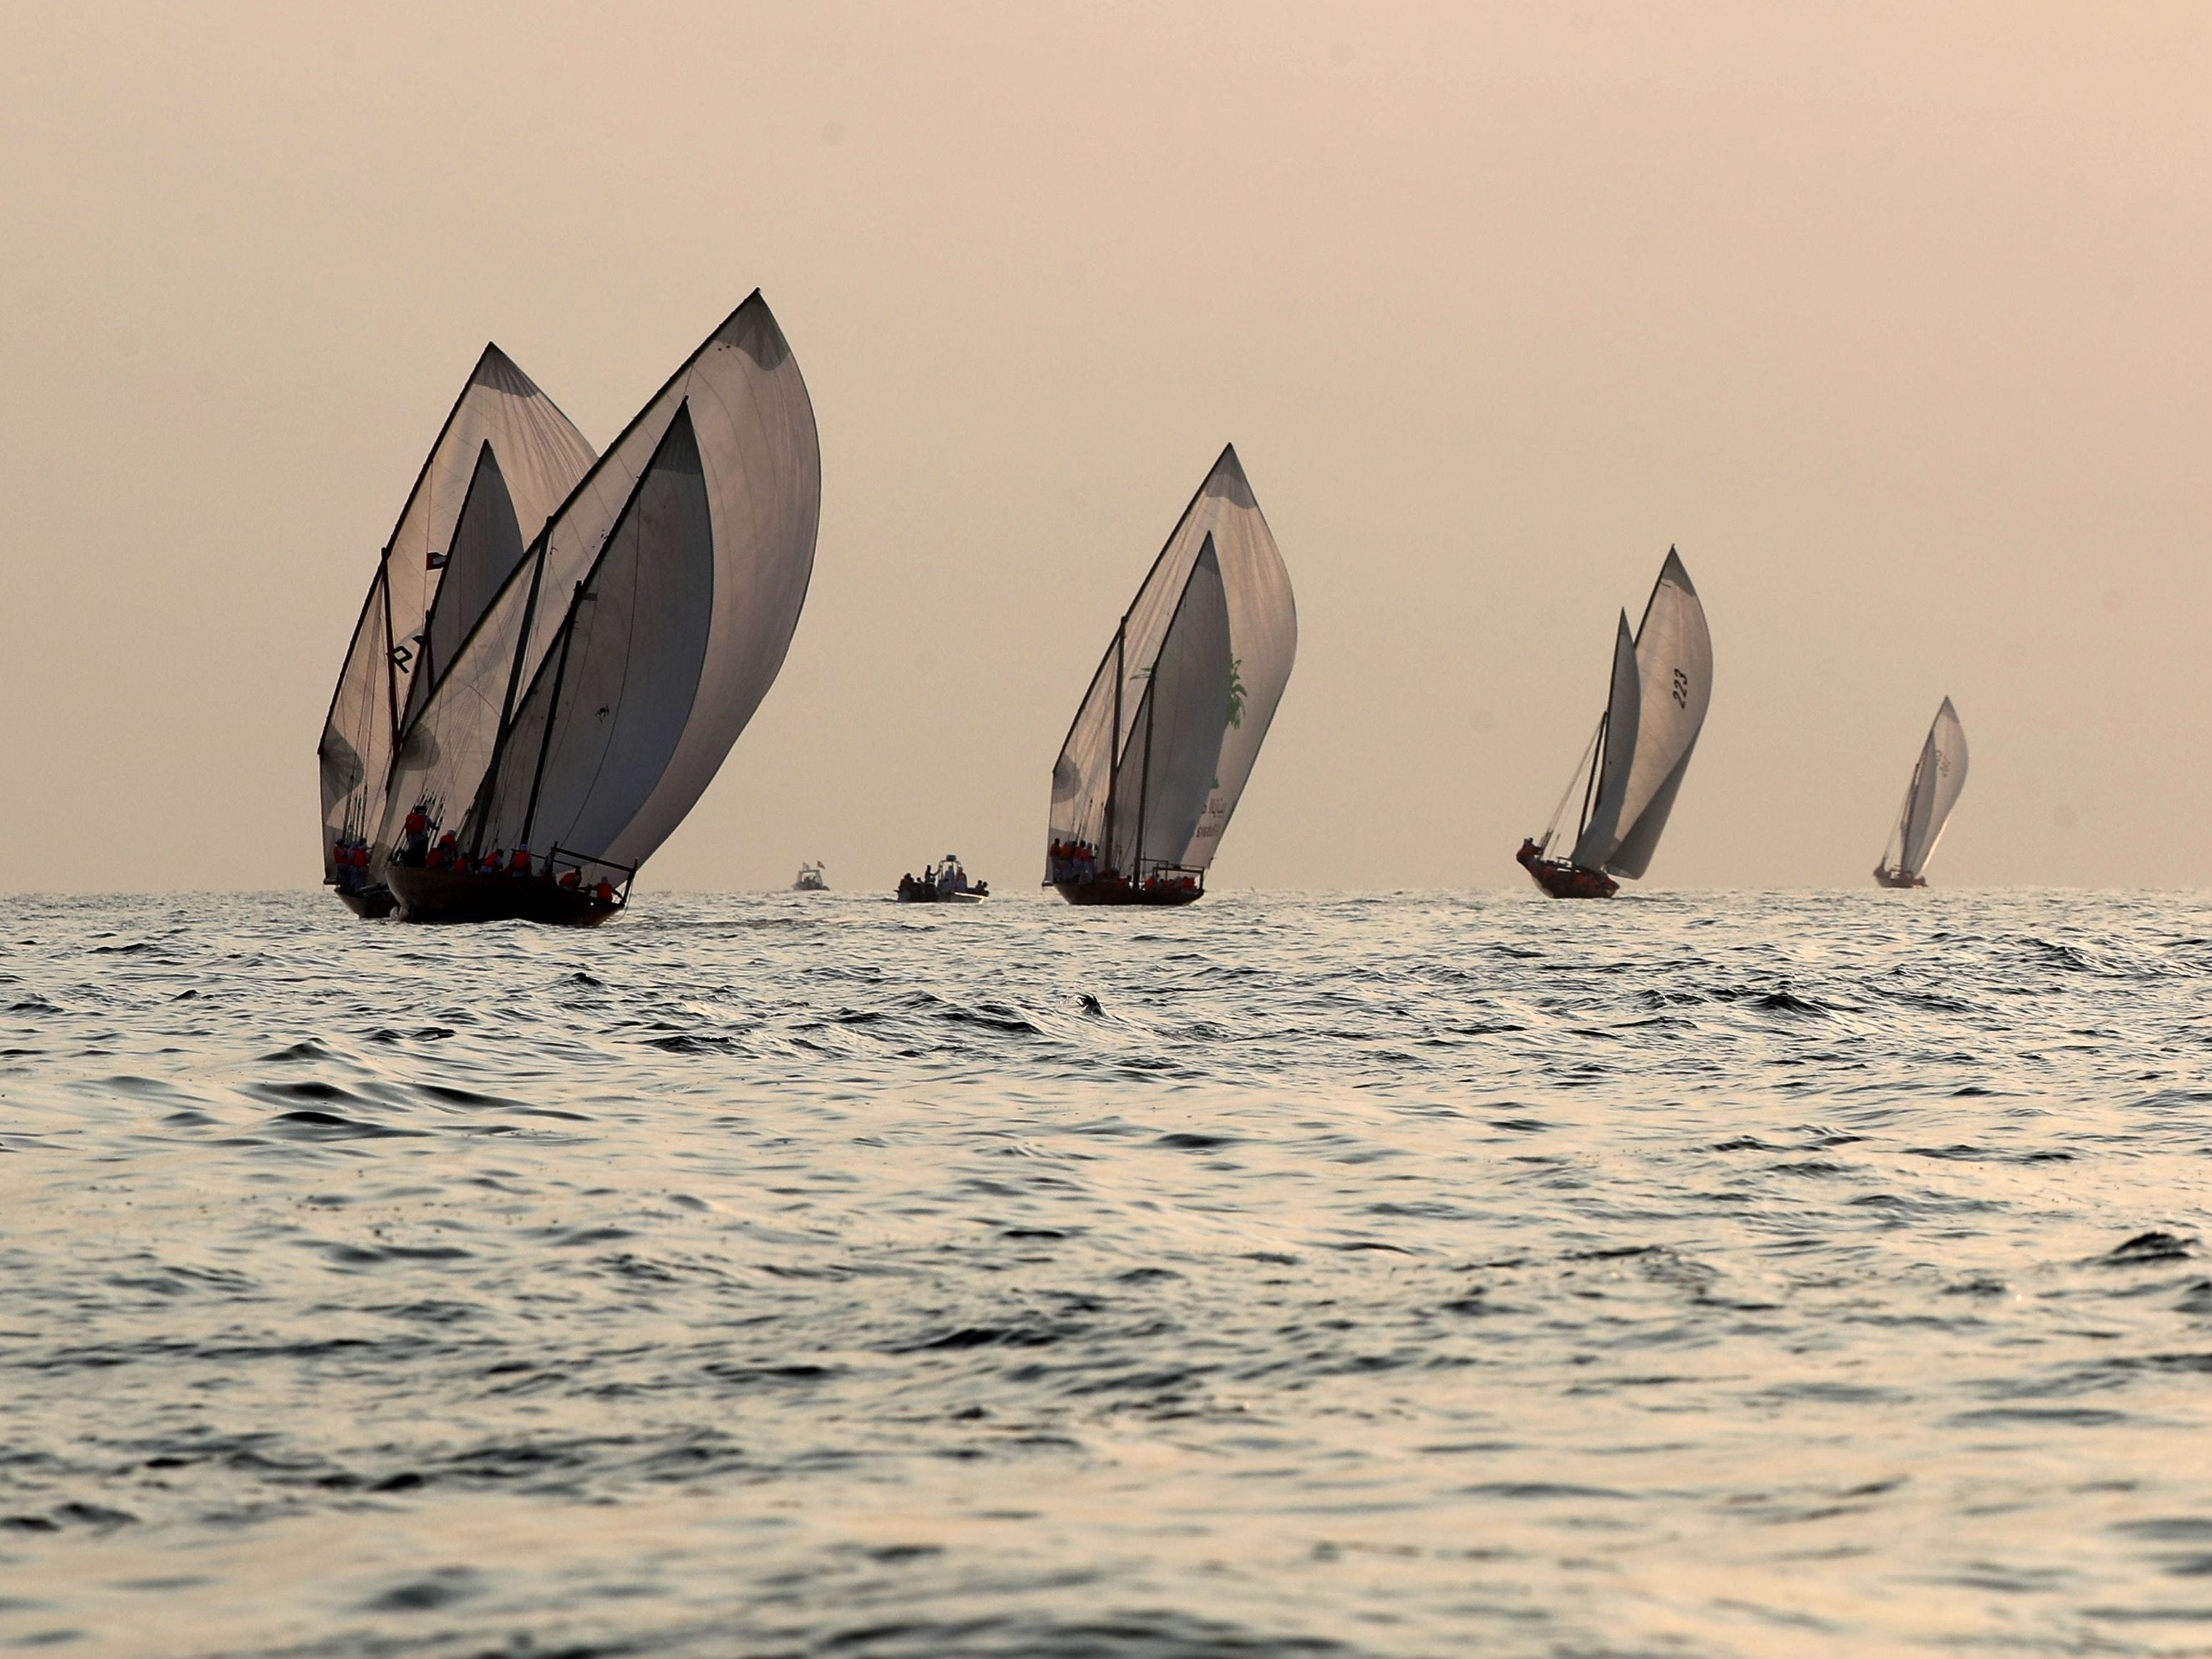 Emirati competitors sail their dhows as they take part in the Dalma Sailing Festival  , off of the coast of Dalma island in the Persian Gulf, about 40 kelometres off of the Emirati capital Abu Dhabi on October 25, 2018.